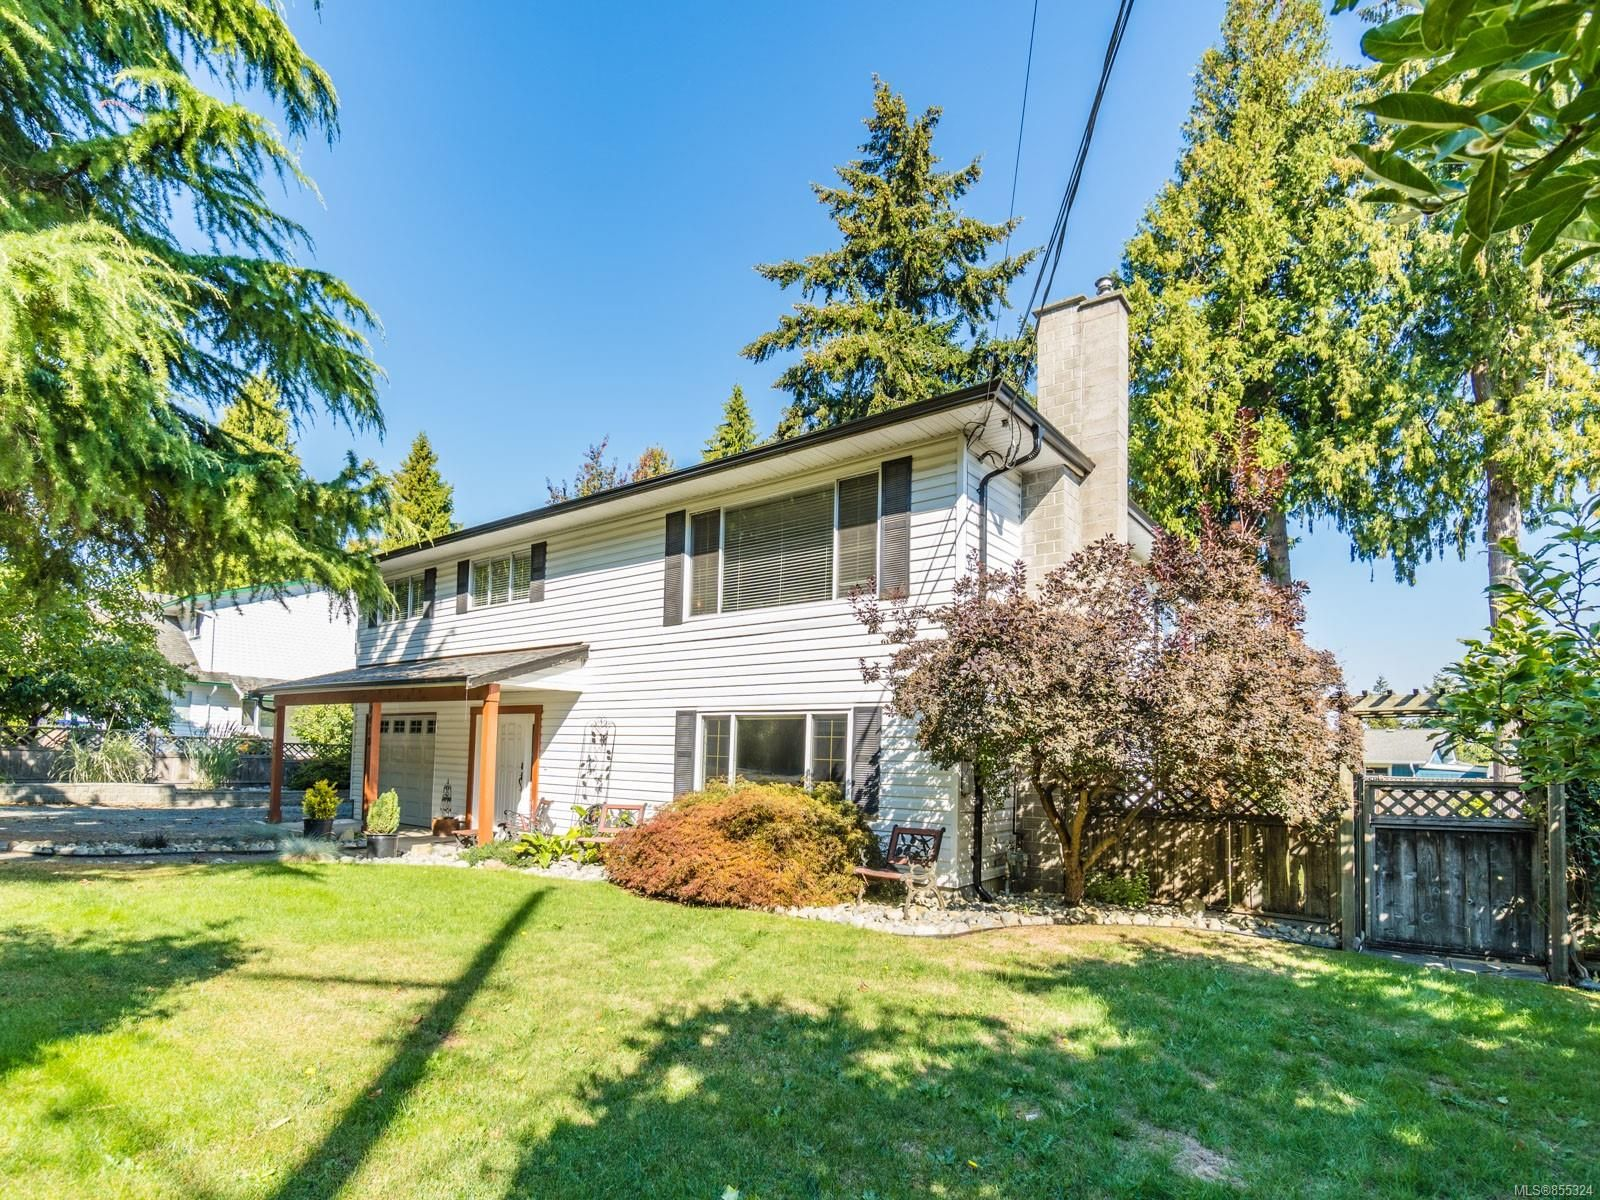 Main Photo: 7410 Harby Rd in : Na Lower Lantzville House for sale (Nanaimo)  : MLS®# 855324